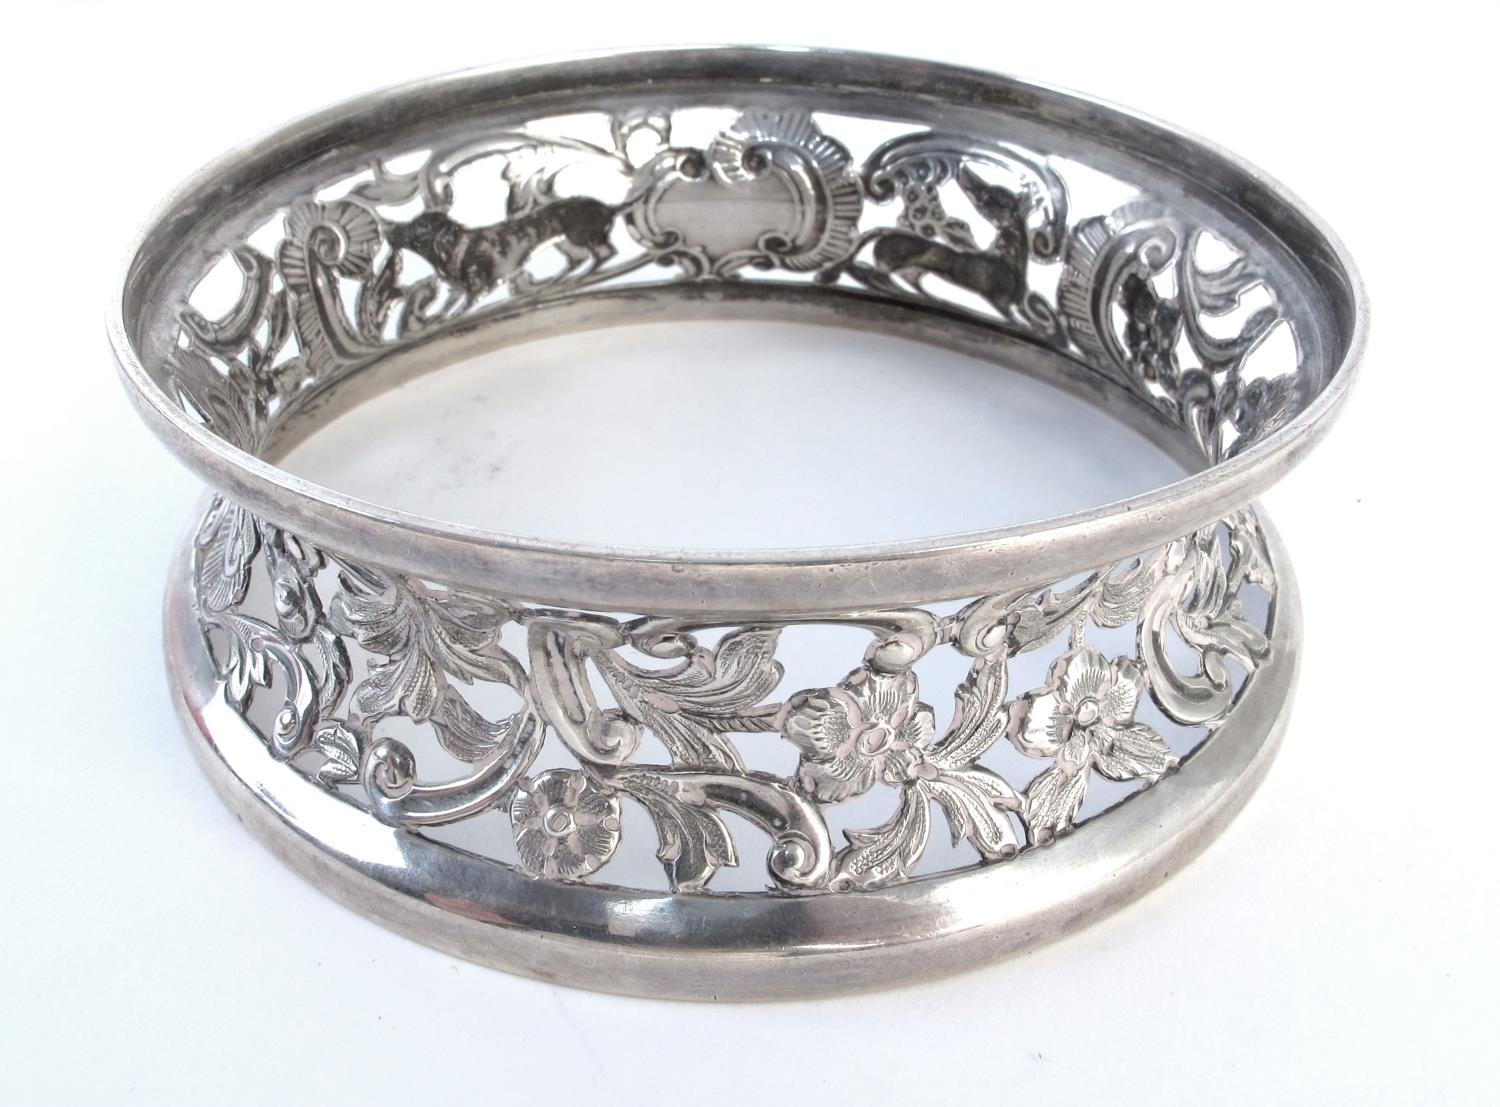 Irish silver miniature dish ring, of typical waisted form, pierced and repousse decorated with